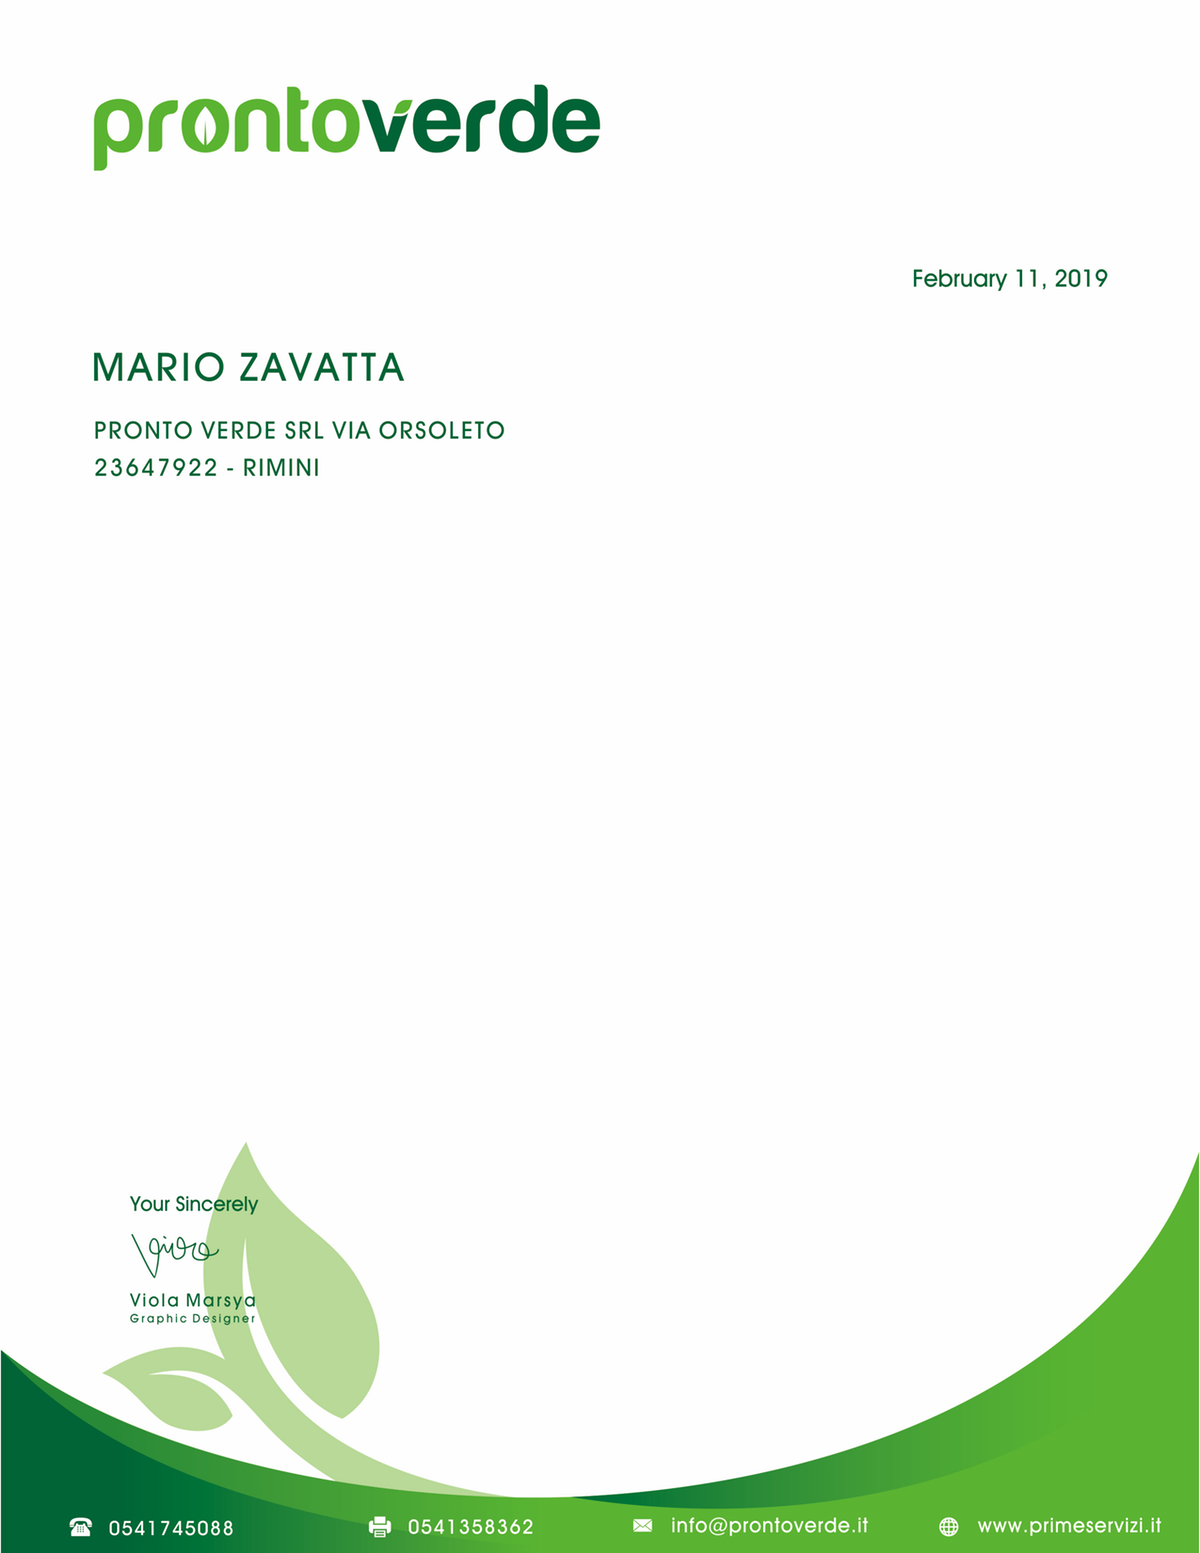 PRONTO VERDE : business cards and letterheads